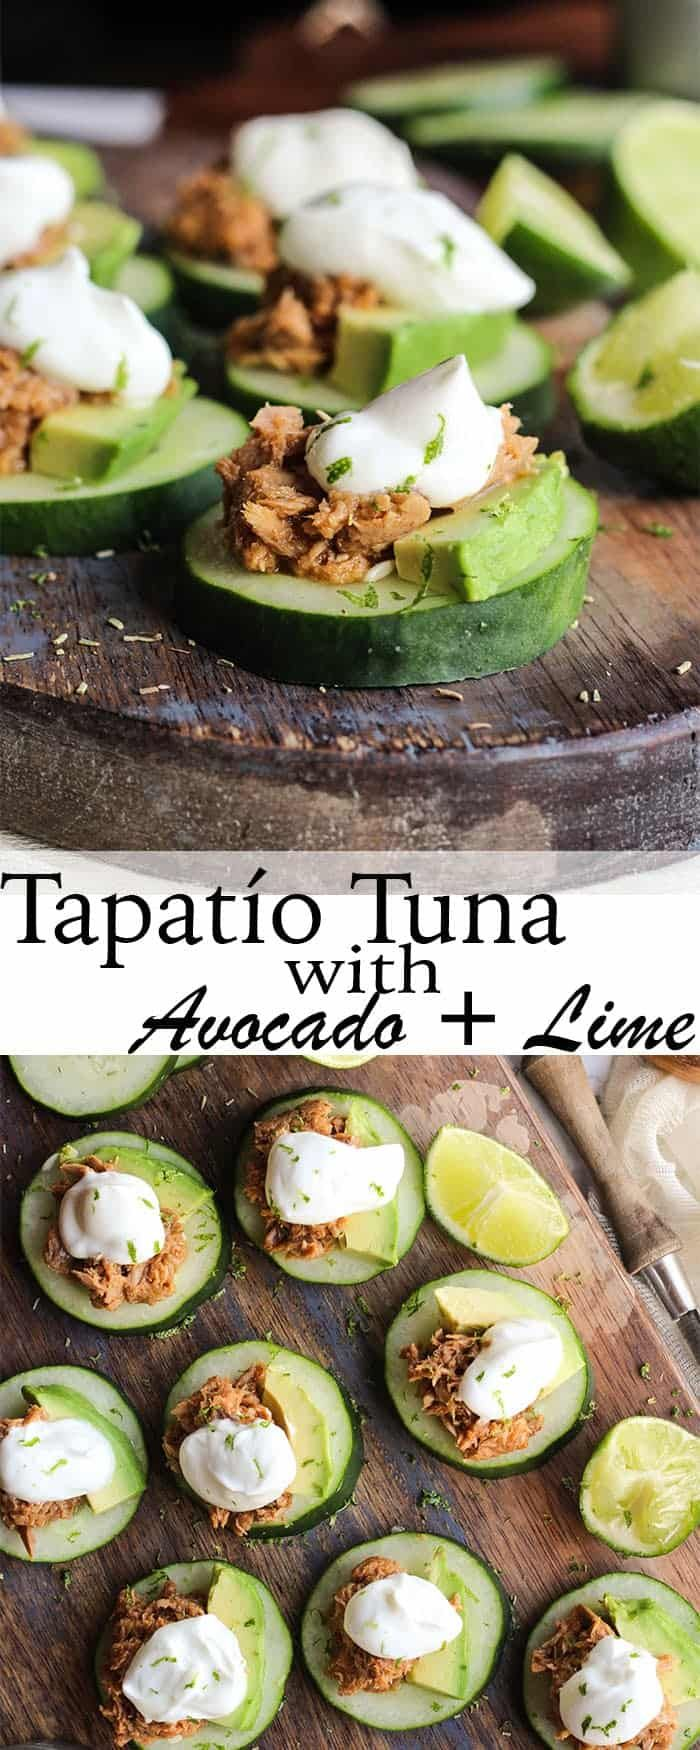 StarKist Tuna Creations BOLD Tapatío on cucumber slices with avocado and lime cream. Enjoy a fresh appetizer full of flavor!